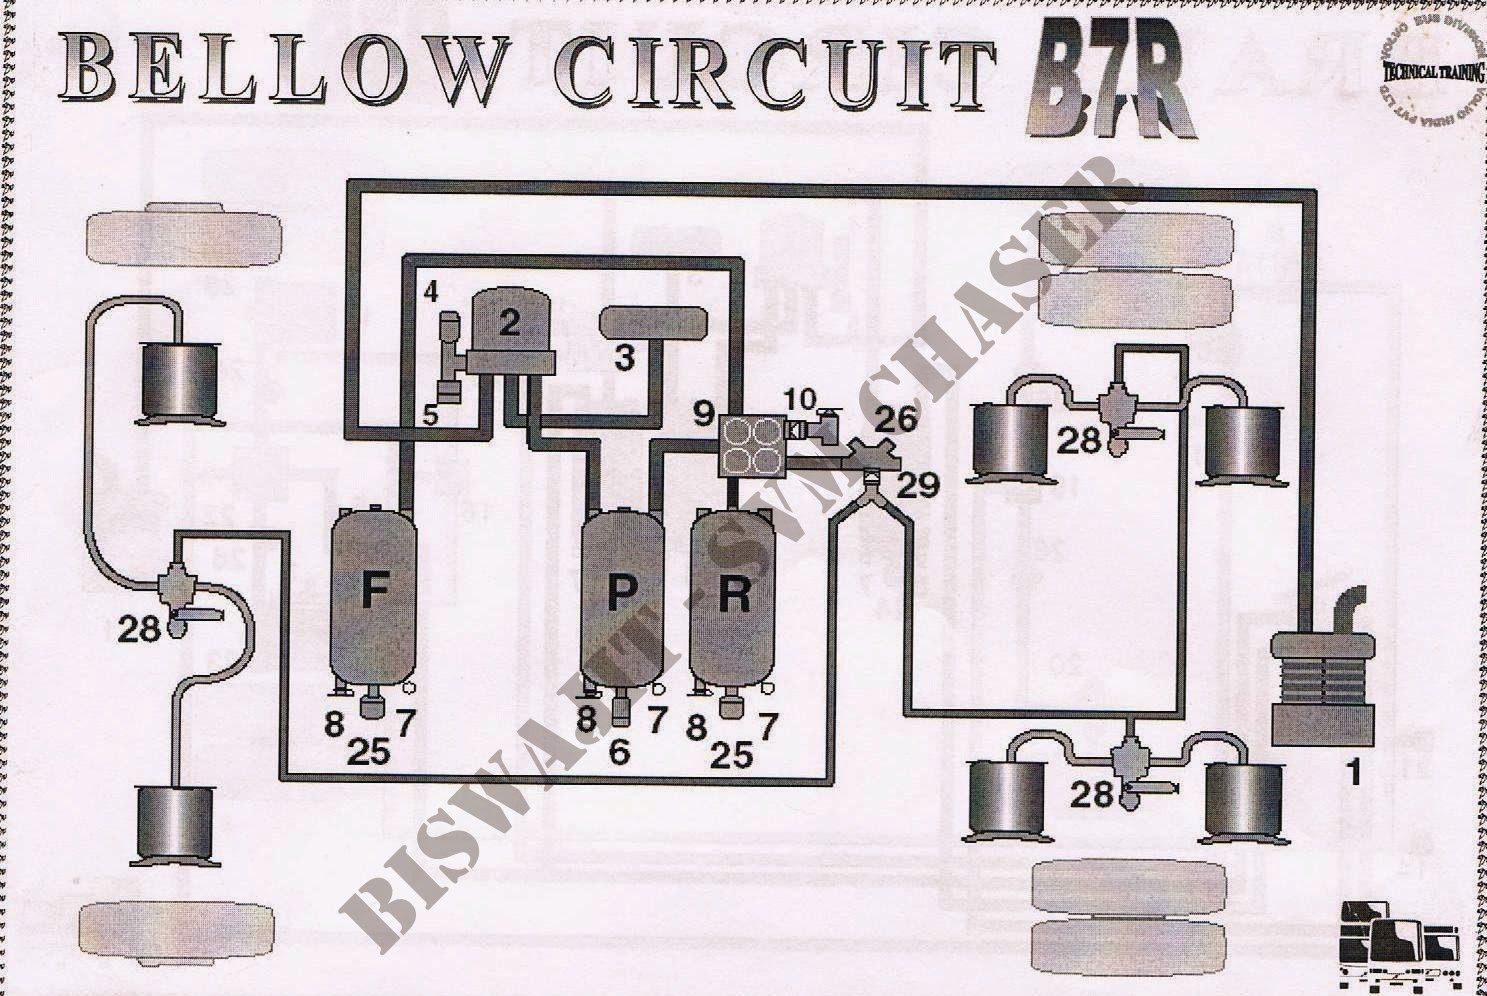 hight resolution of volvo b7r bellow circuit and air suspension biswajit svm chaservolvo b7r bellow circuit diagram